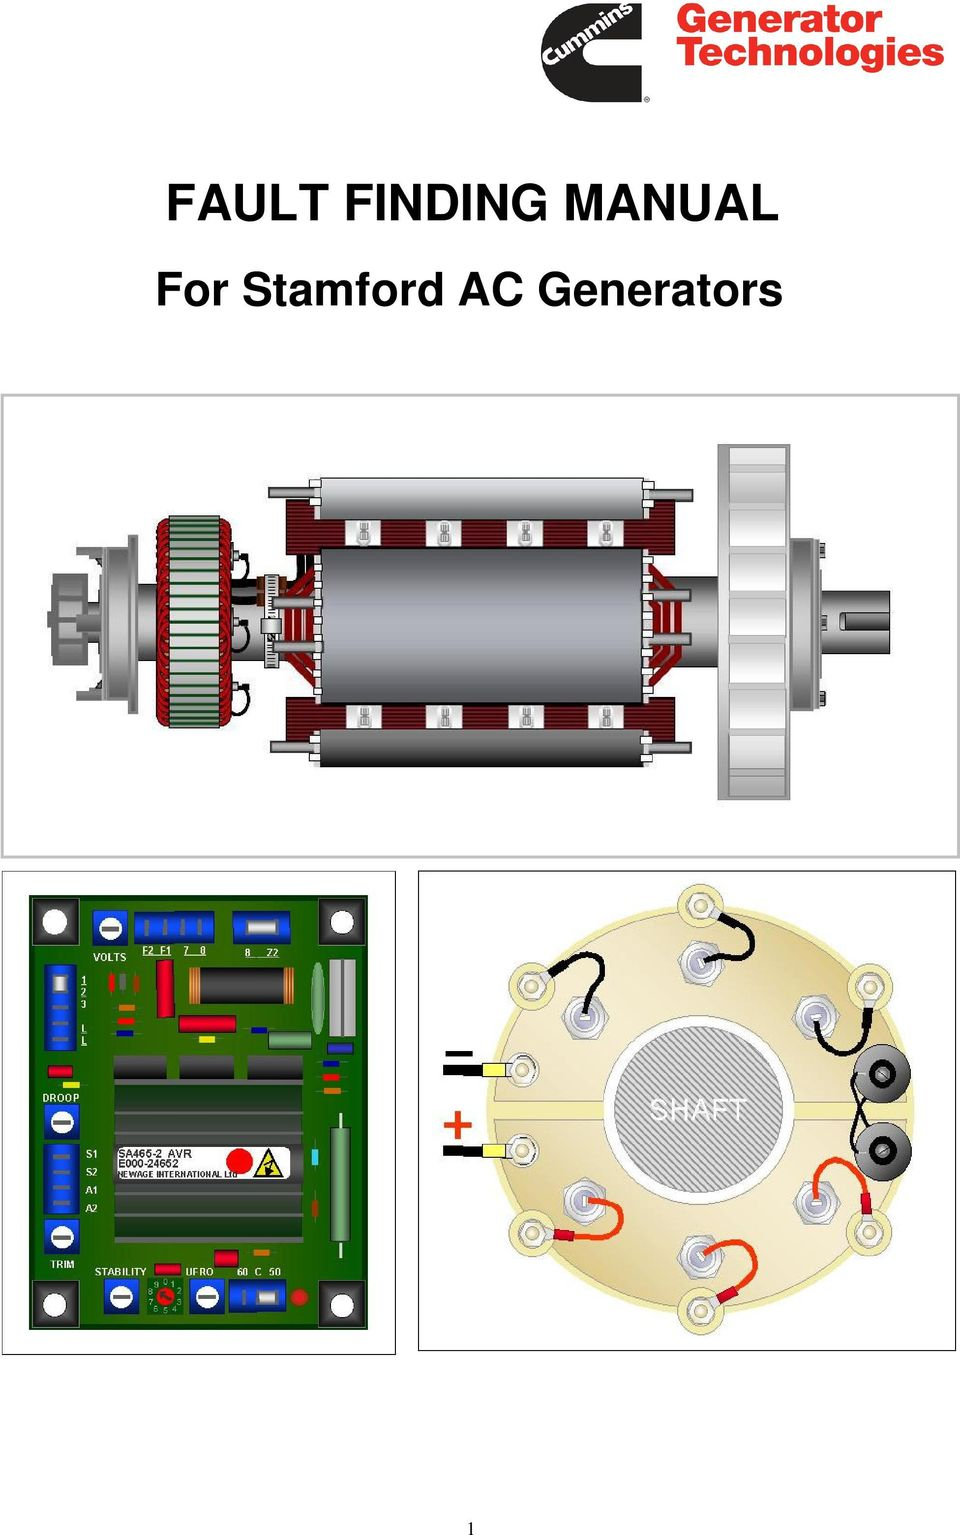 FAULT FINDING MANUAL. For Stamford AC Generators - PDF Free DownloadDocPlayer.net